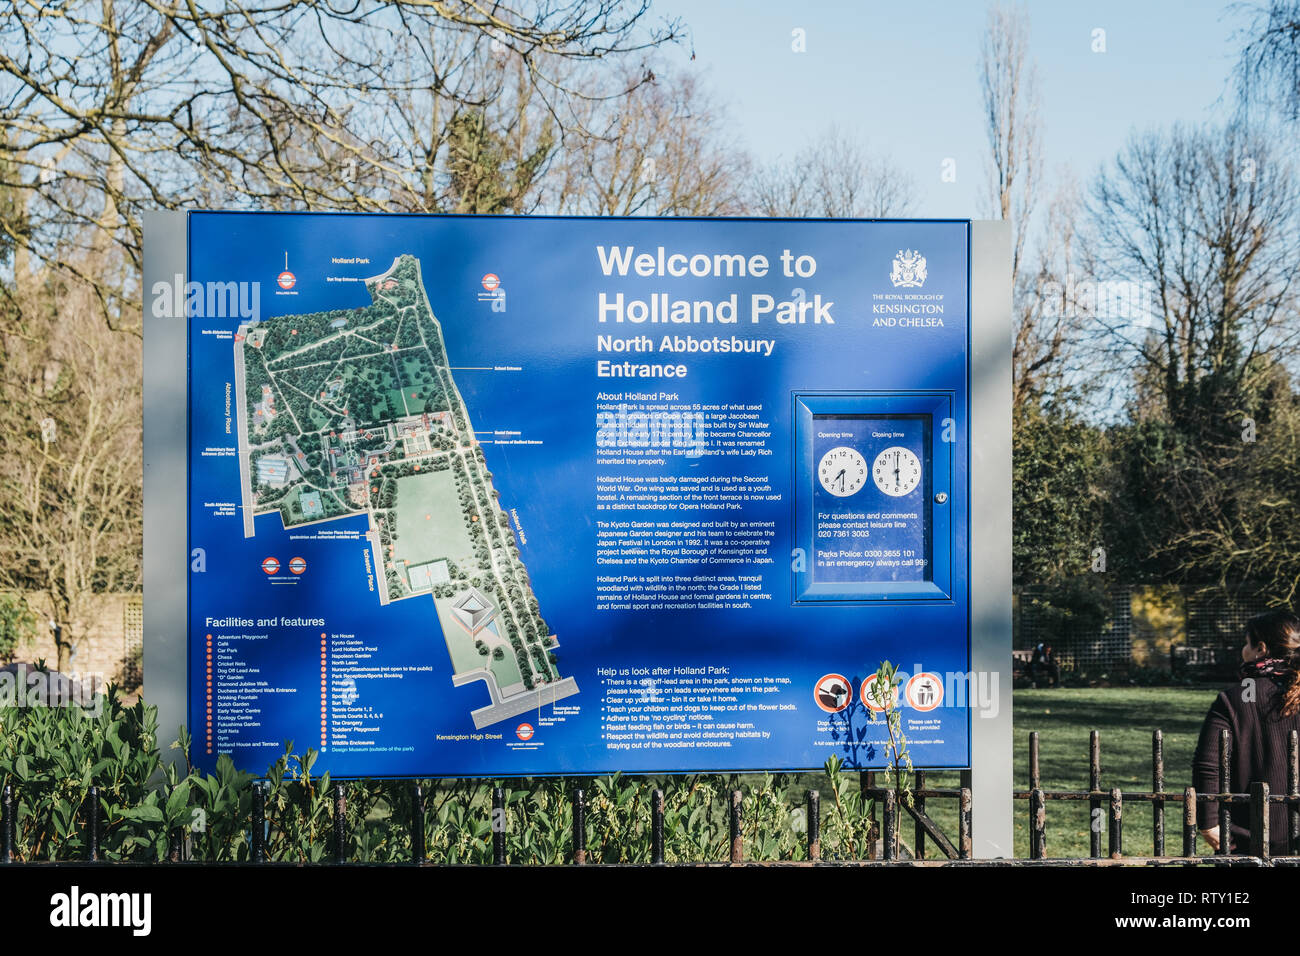 London, UK - February 23, 2019: Welcome sign by North Abbotsbury entrance to Holland Park, London. Holland park is the largest park in Kensington and  Stock Photo